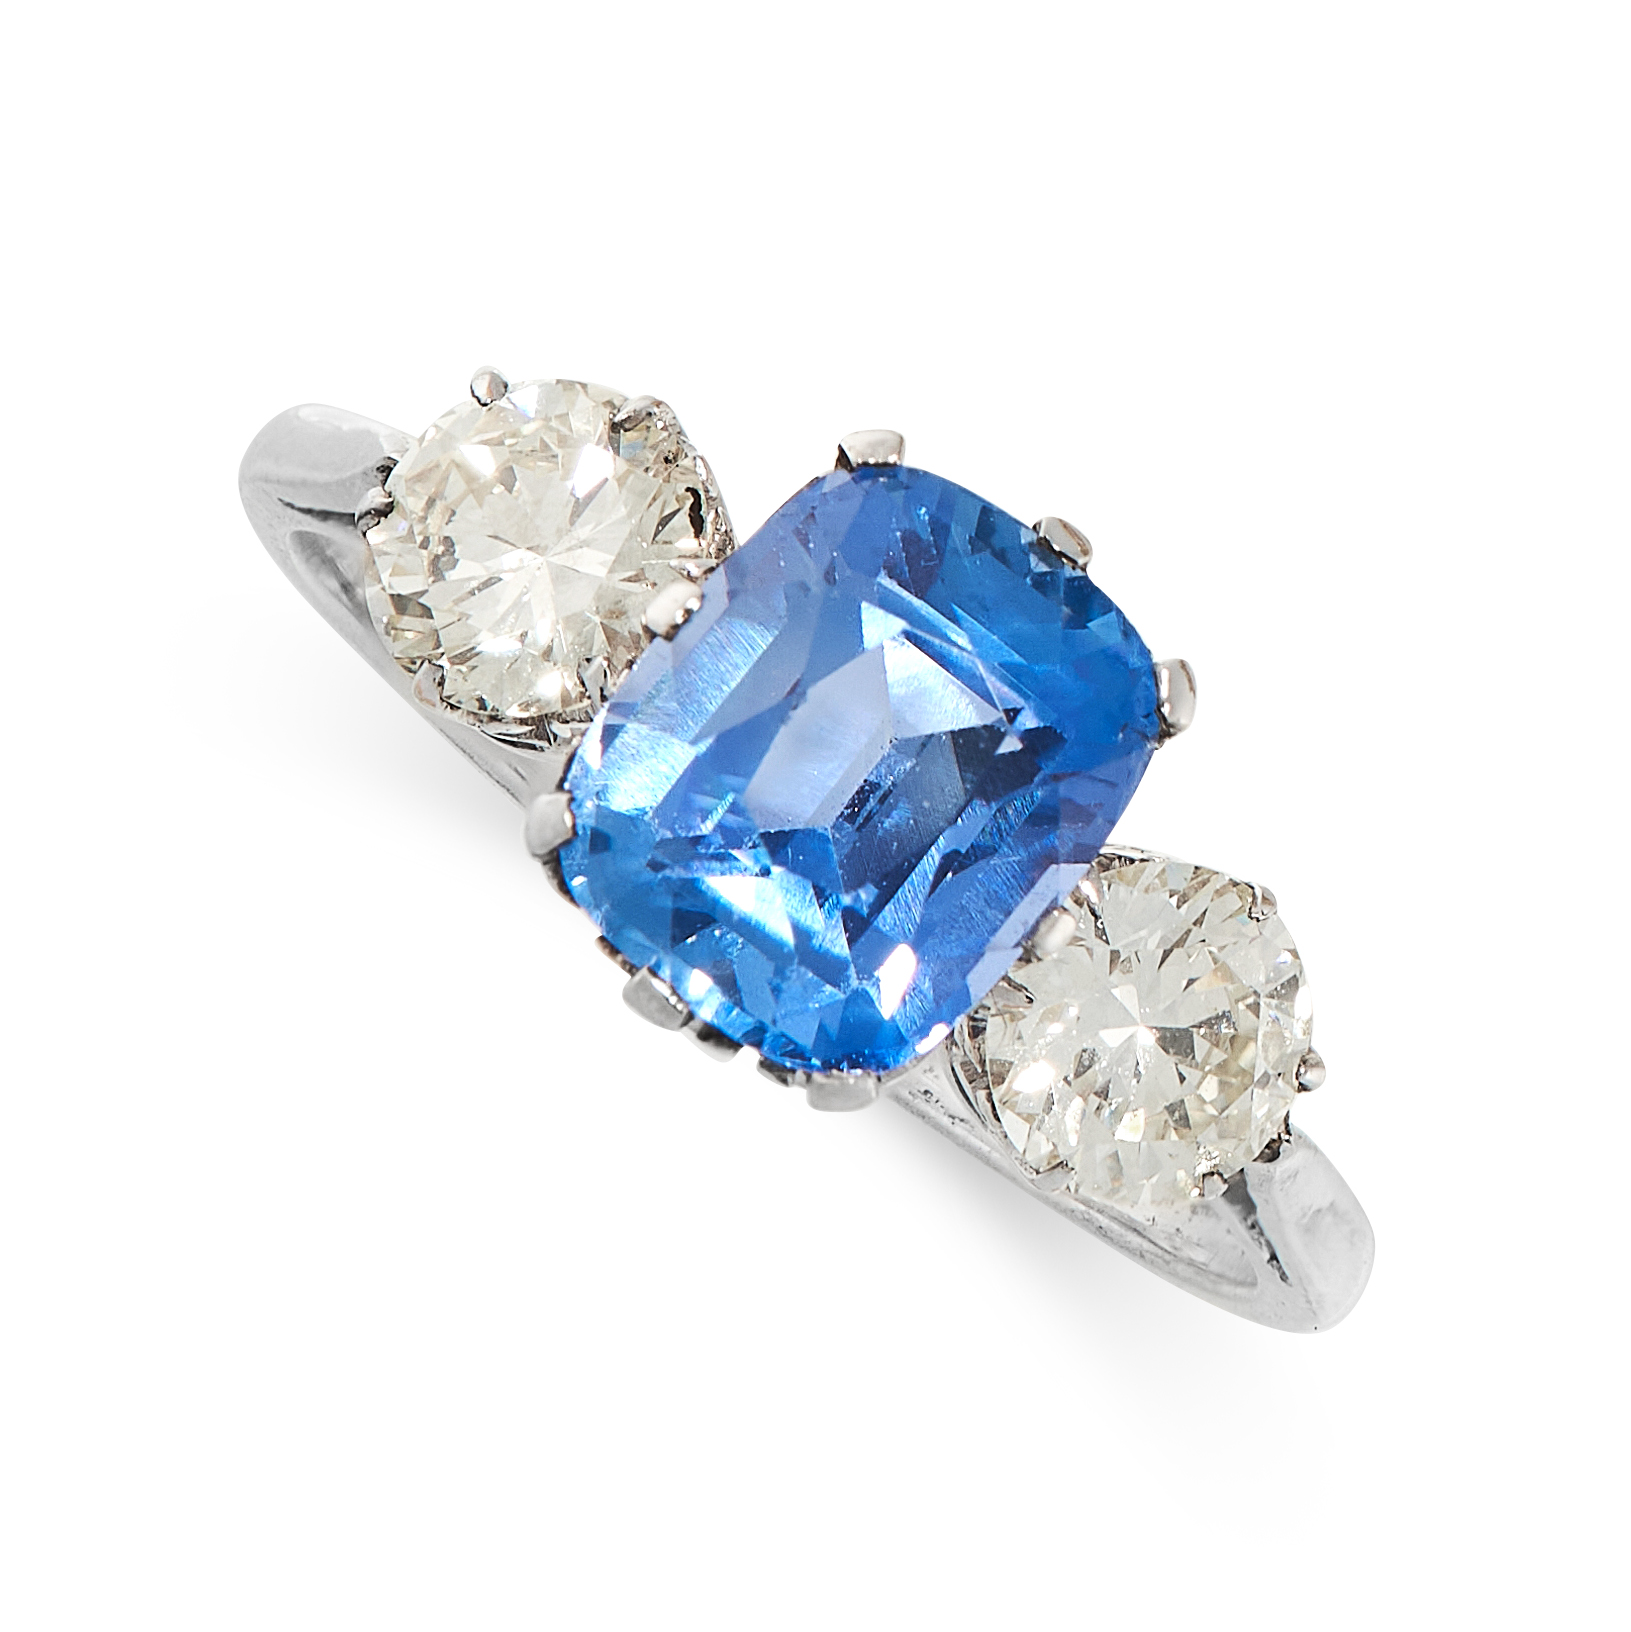 AN UNHEATED SAPPHIRE AND DIAMOND THREE STONE RING set with a cushion cut blue sapphire of 2.43